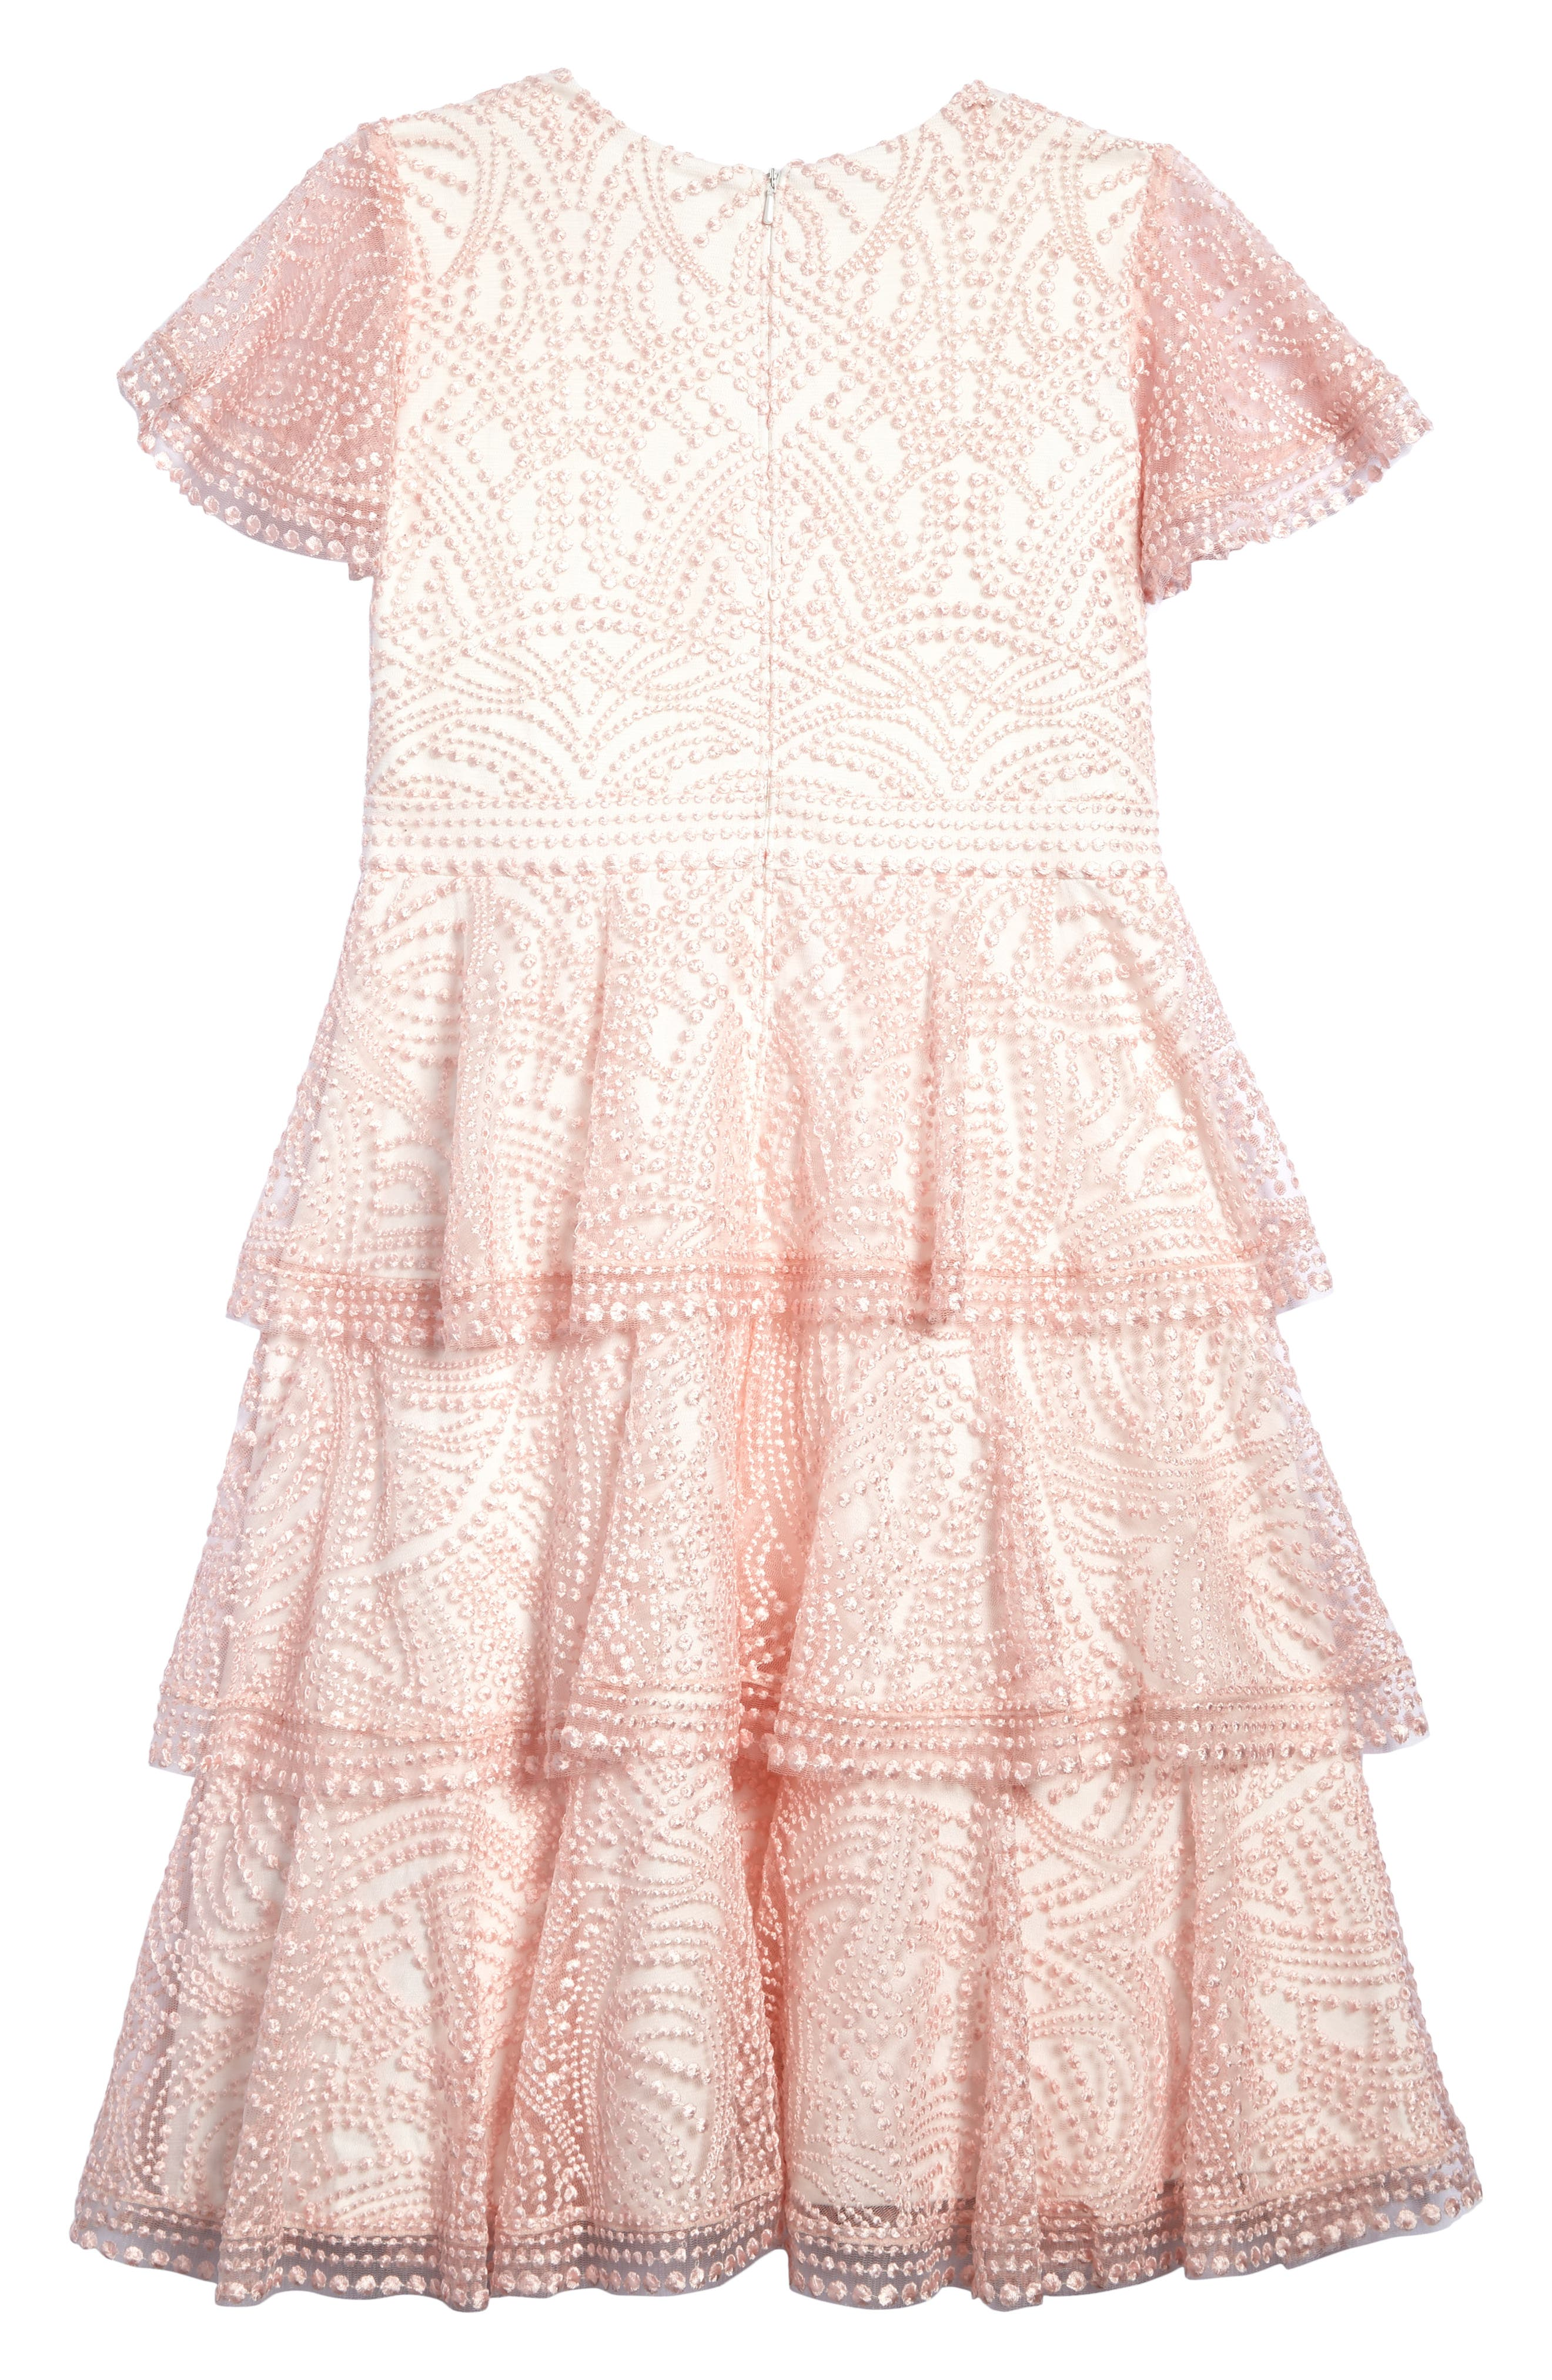 Embroidered Ruffle Dress,                             Alternate thumbnail 2, color,                             683